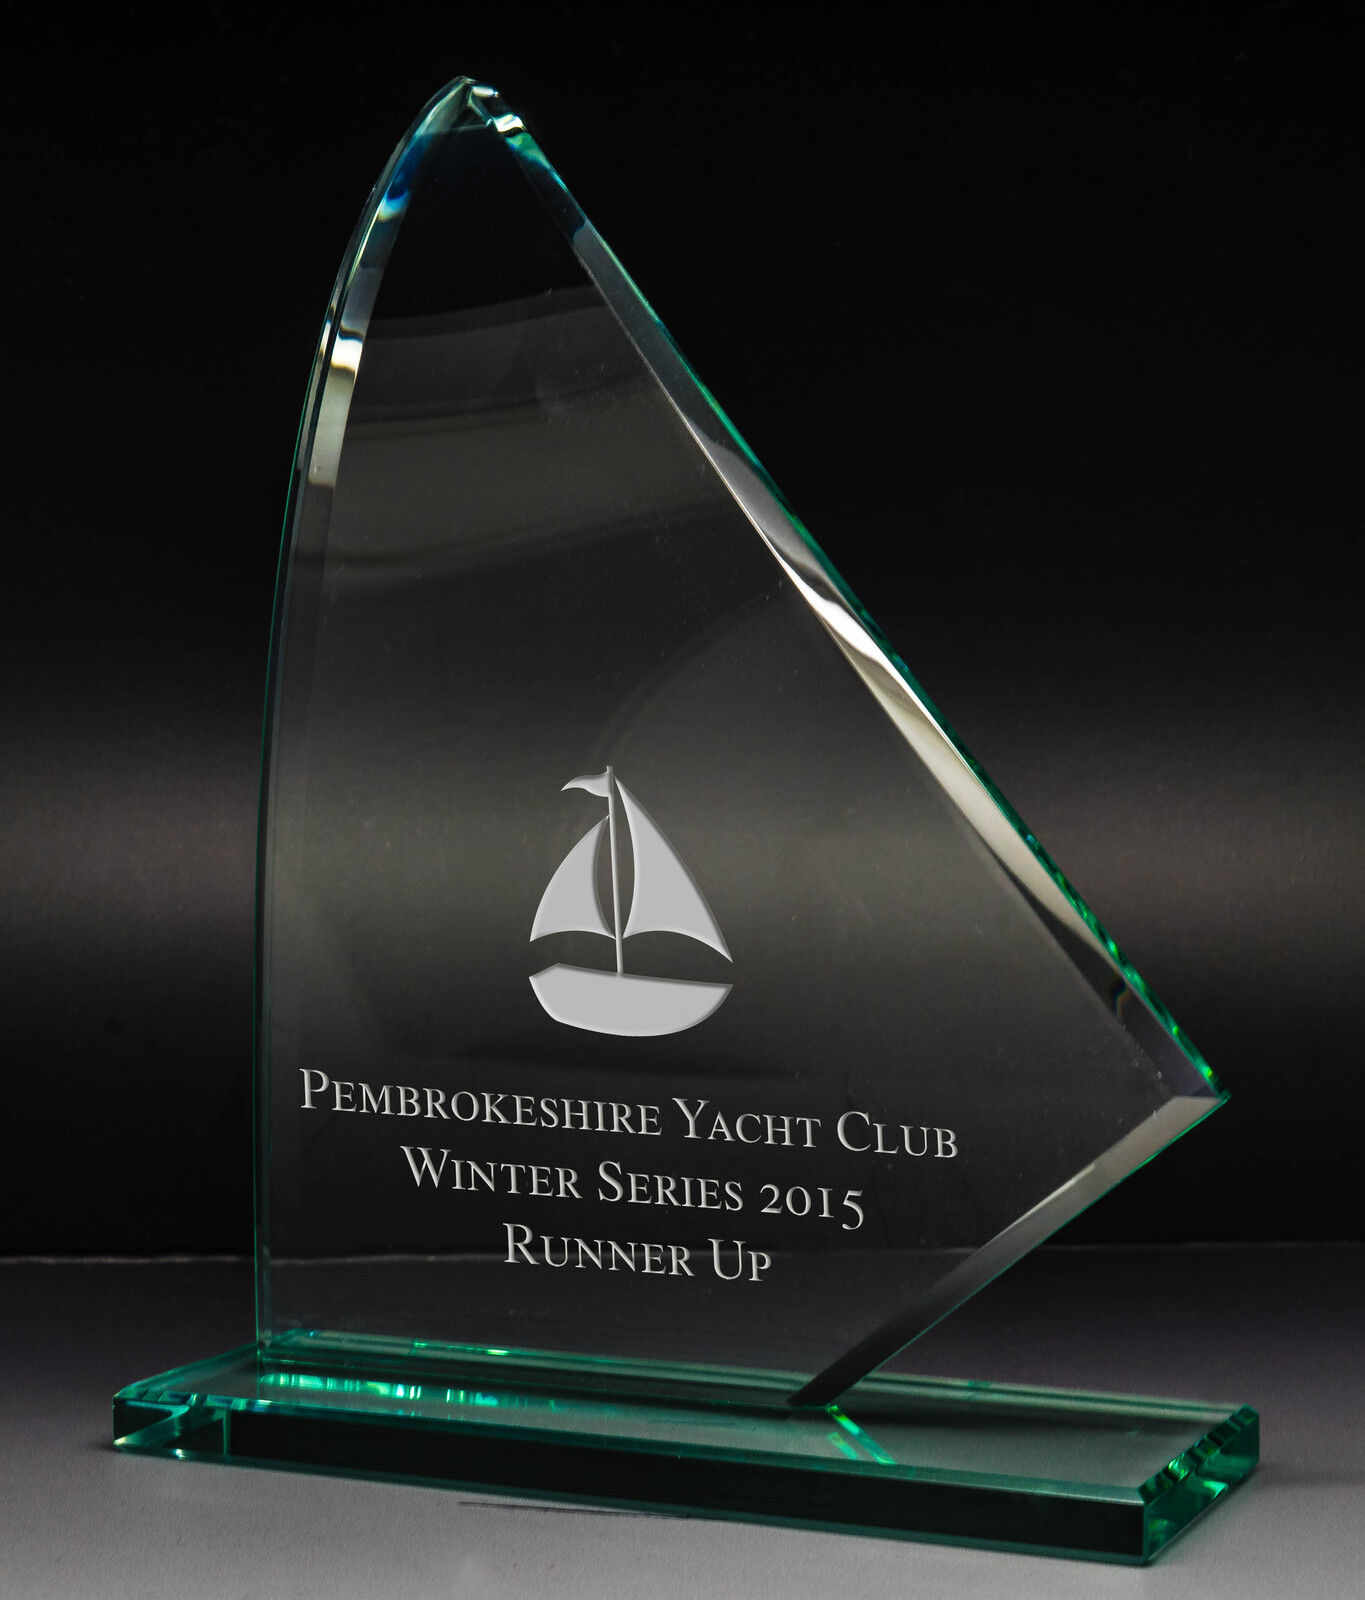 Personalised Jade Glass Curved Sailing or Yachting Award Trophy, Laser Engraved